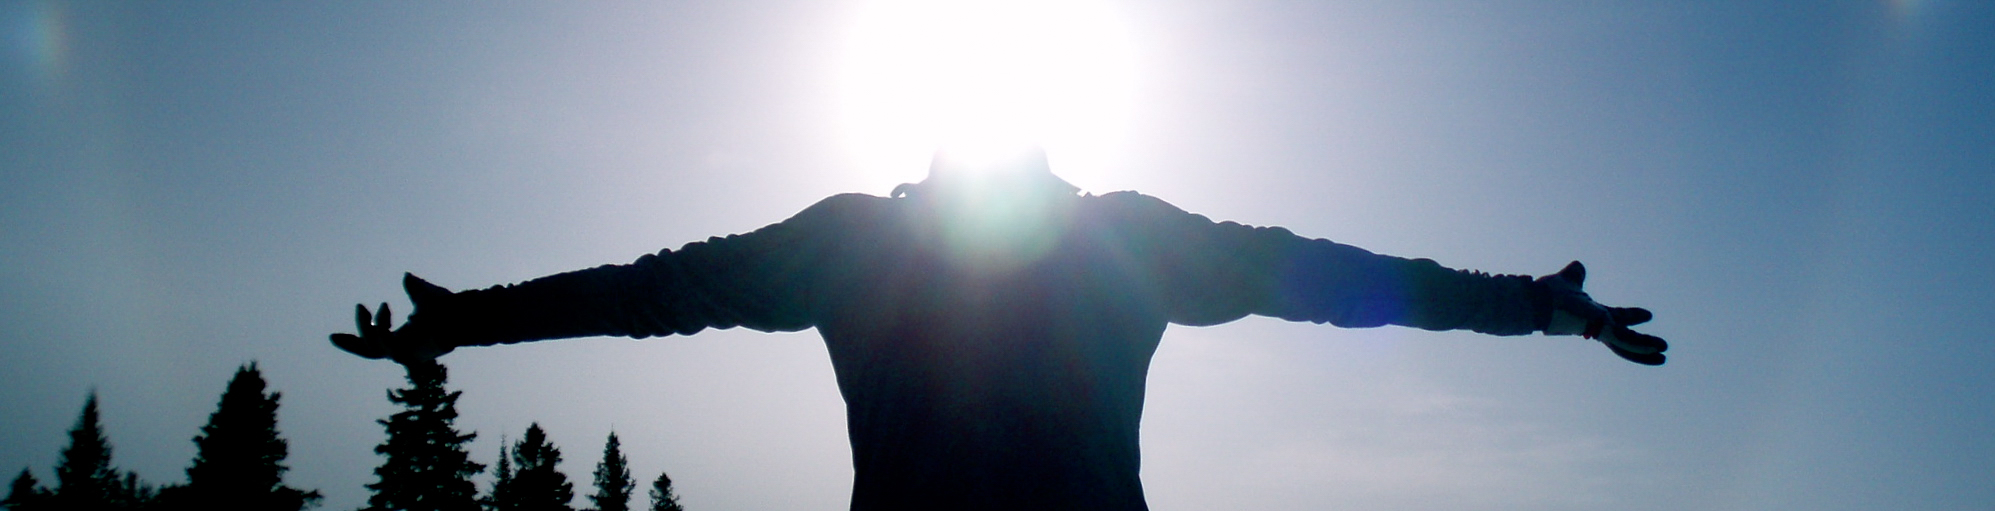 Silhouette of a person with their arms outstretched against the sun & sky